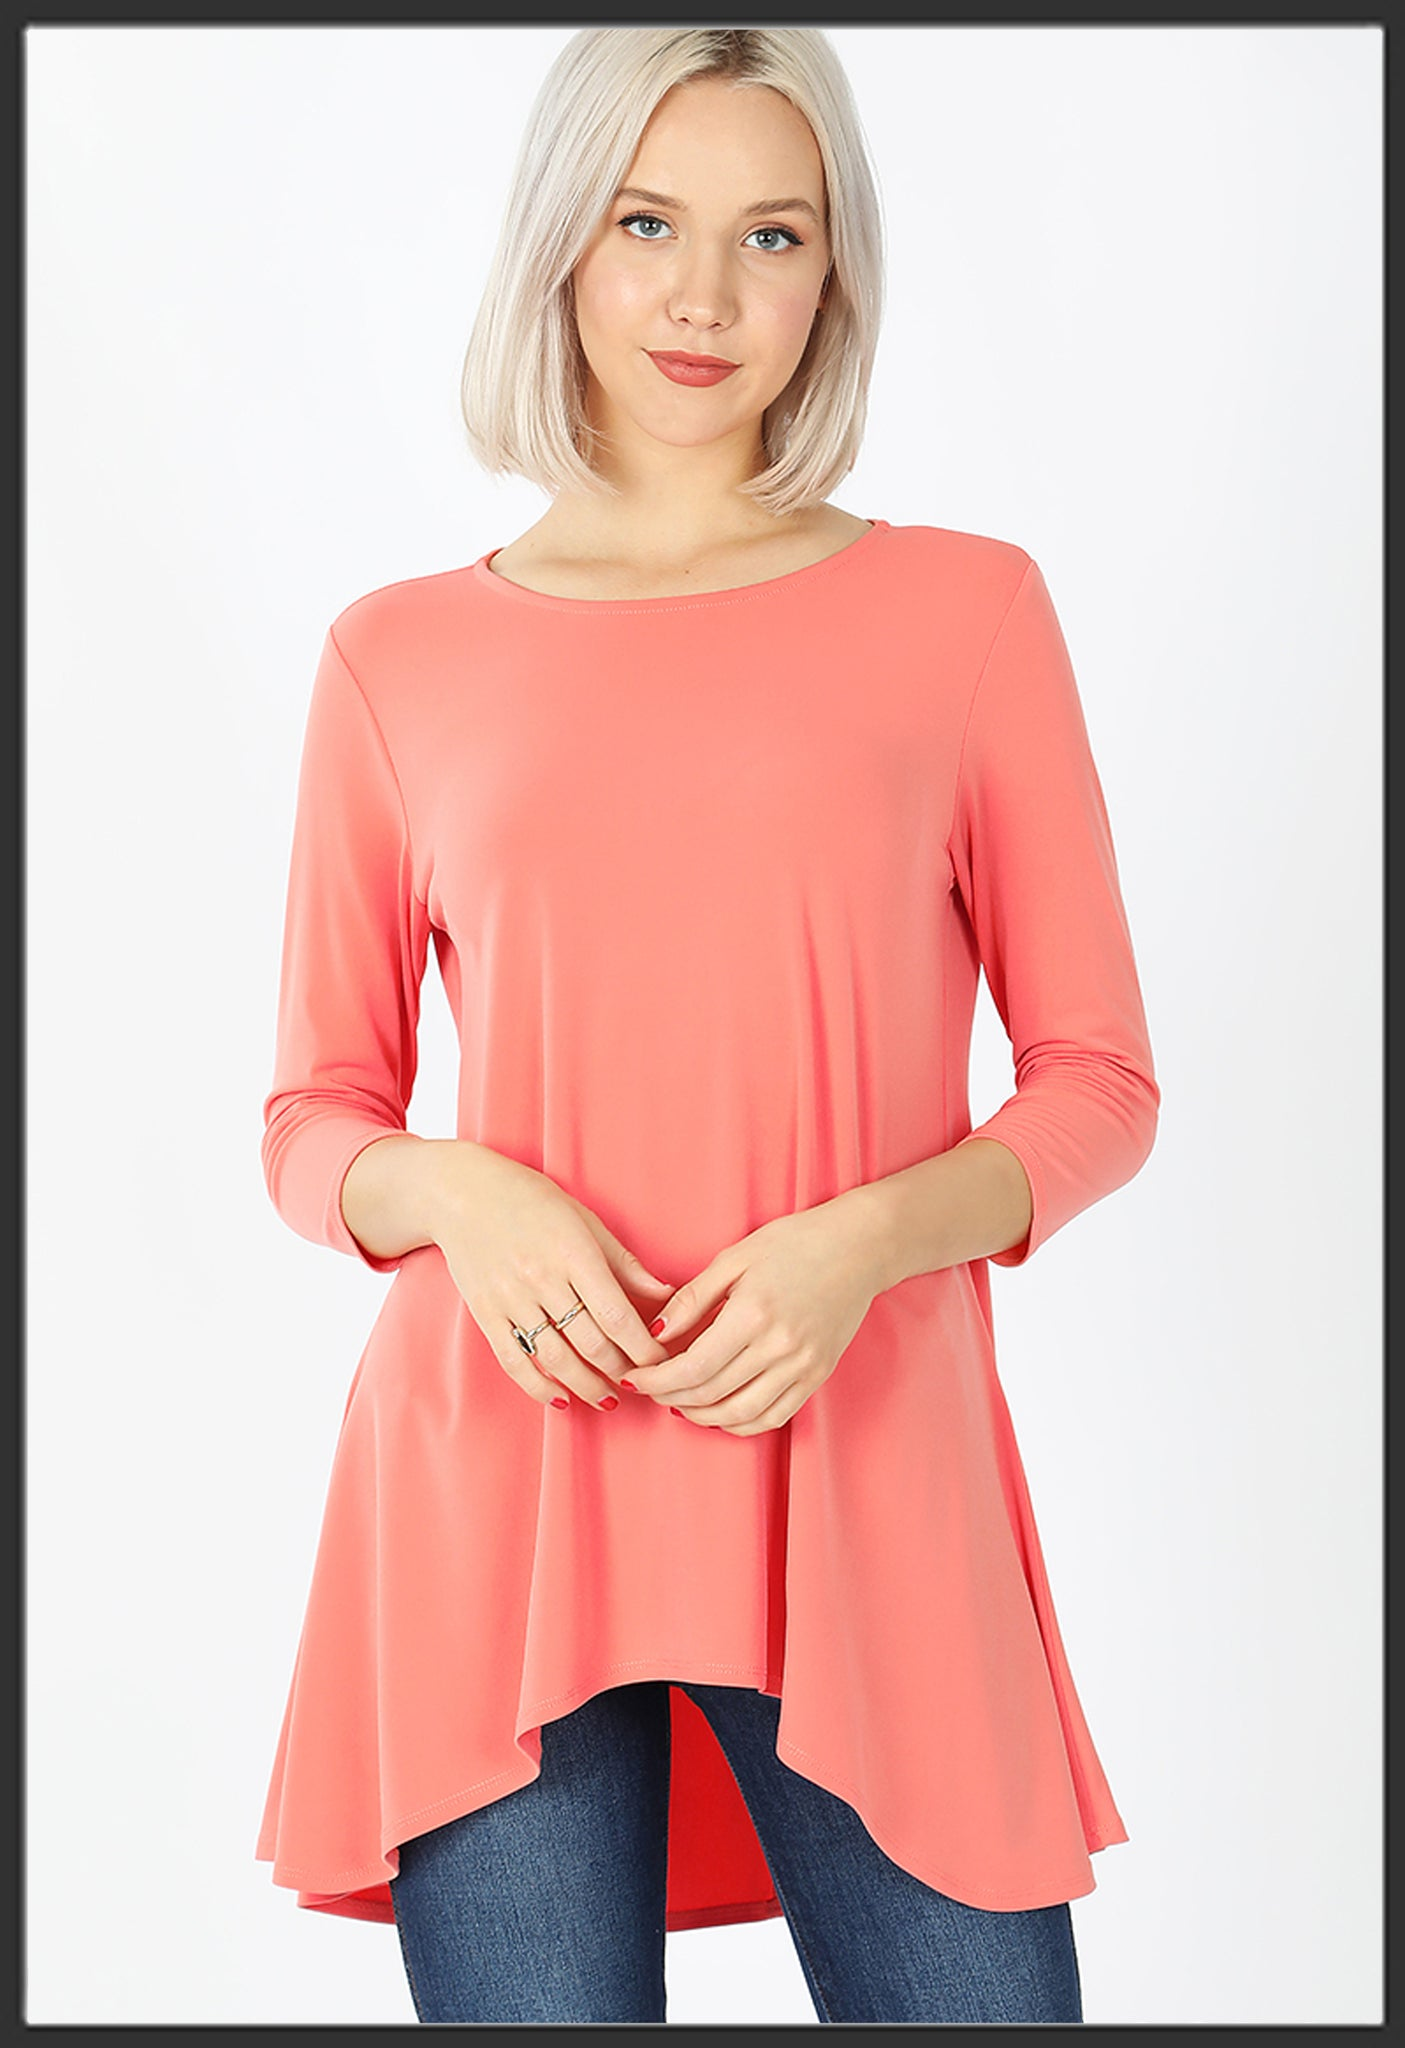 Women's Solid Coral Top 3/4 Sleeve High Low Hem Tunic Top Coral - Arrow Trend Leggings